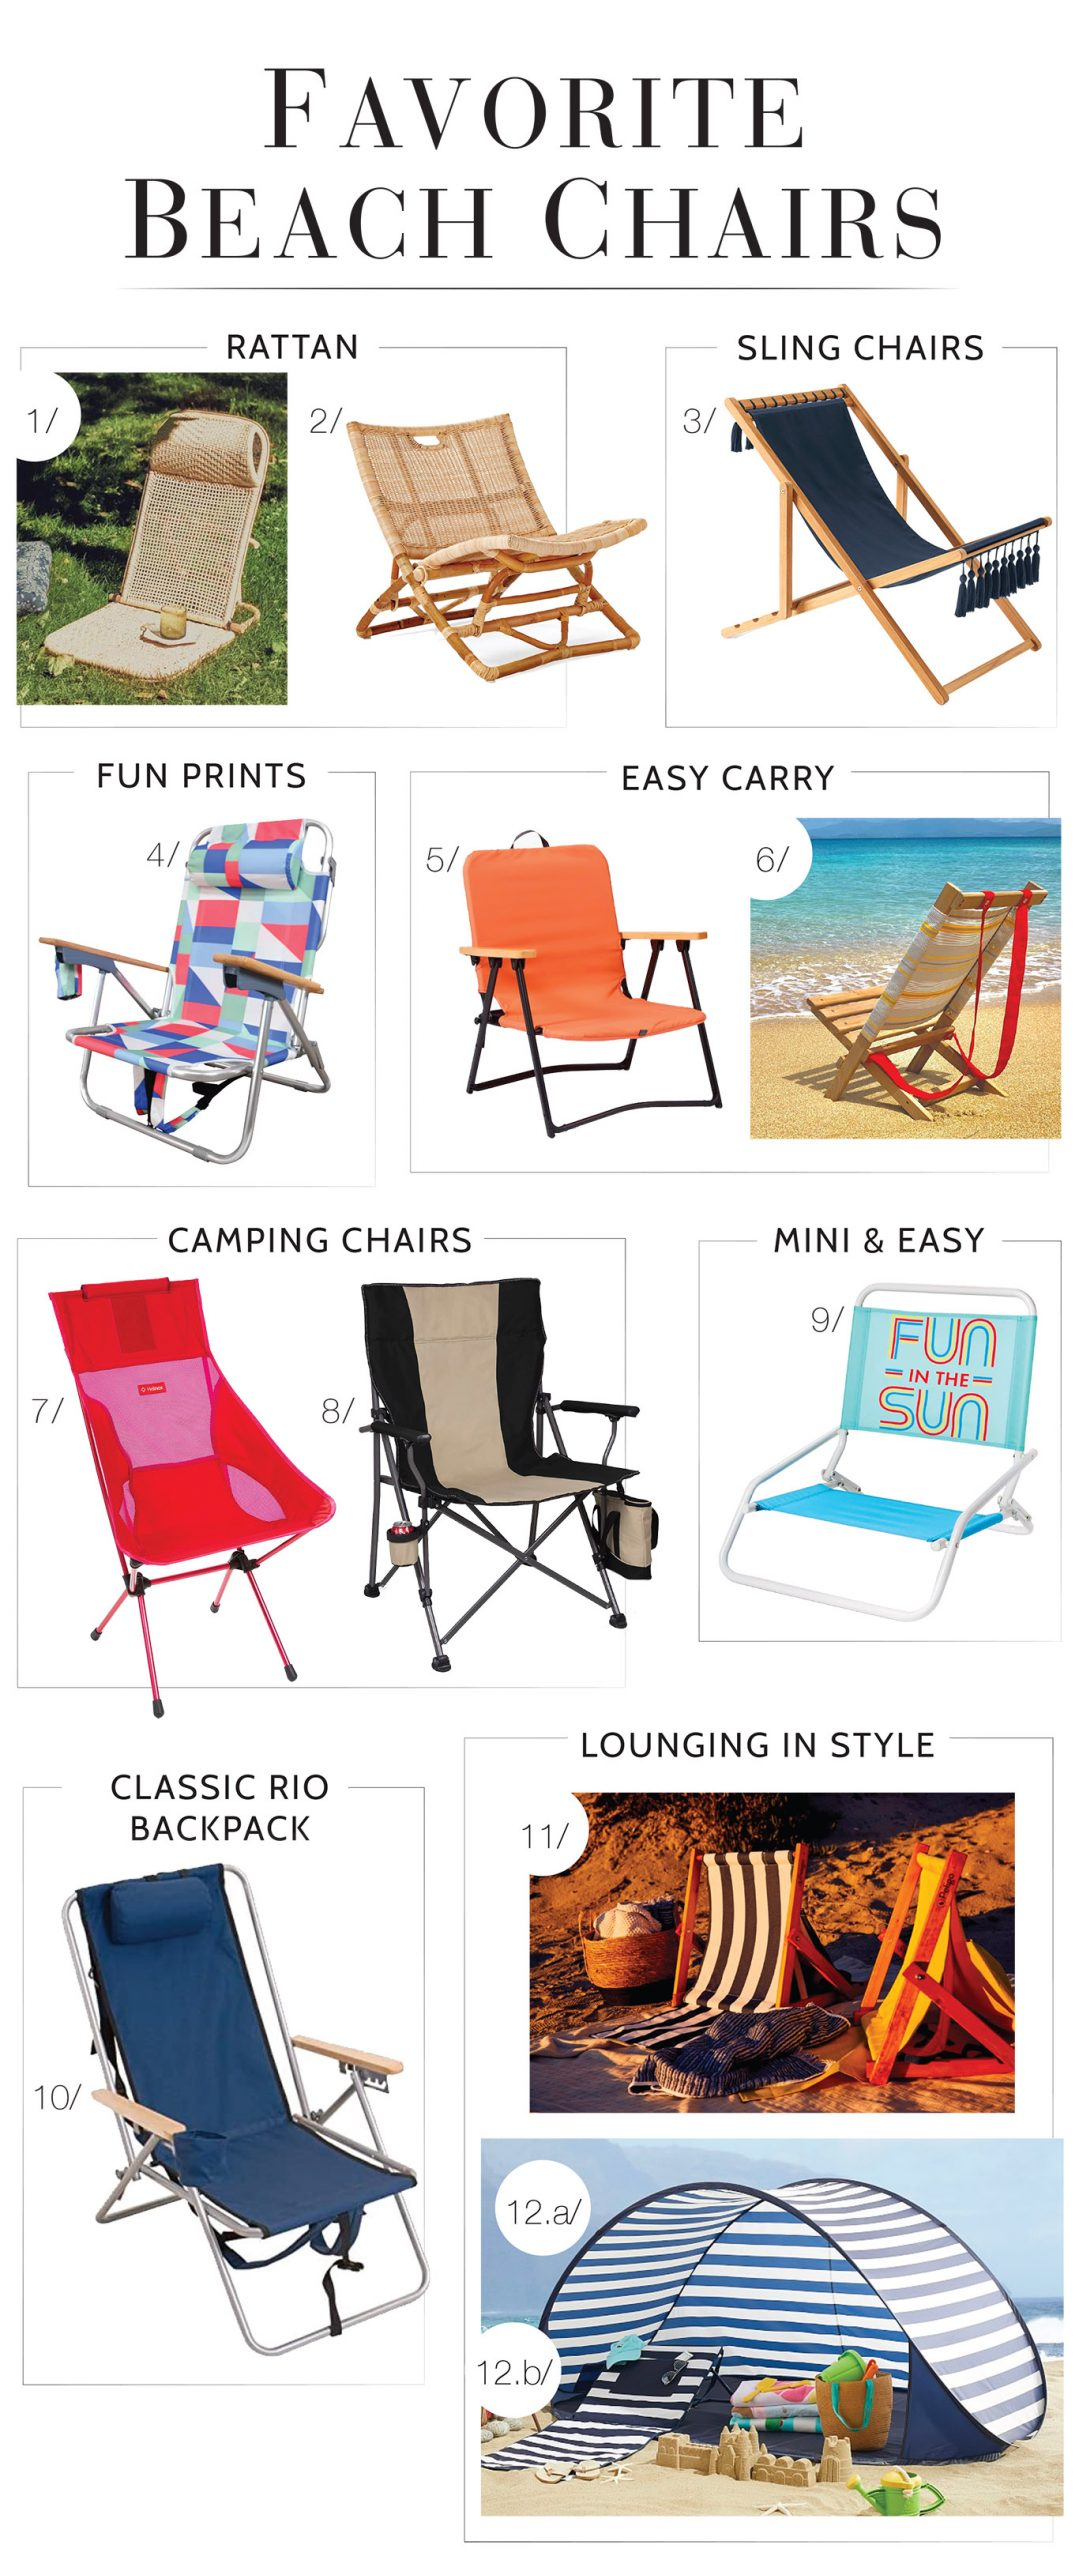 So many lounge chairs! We've got rattan, folding & easy-carry chairs, the best chairs for camping, sling loungers & beach chairs for the kids. Let's go!